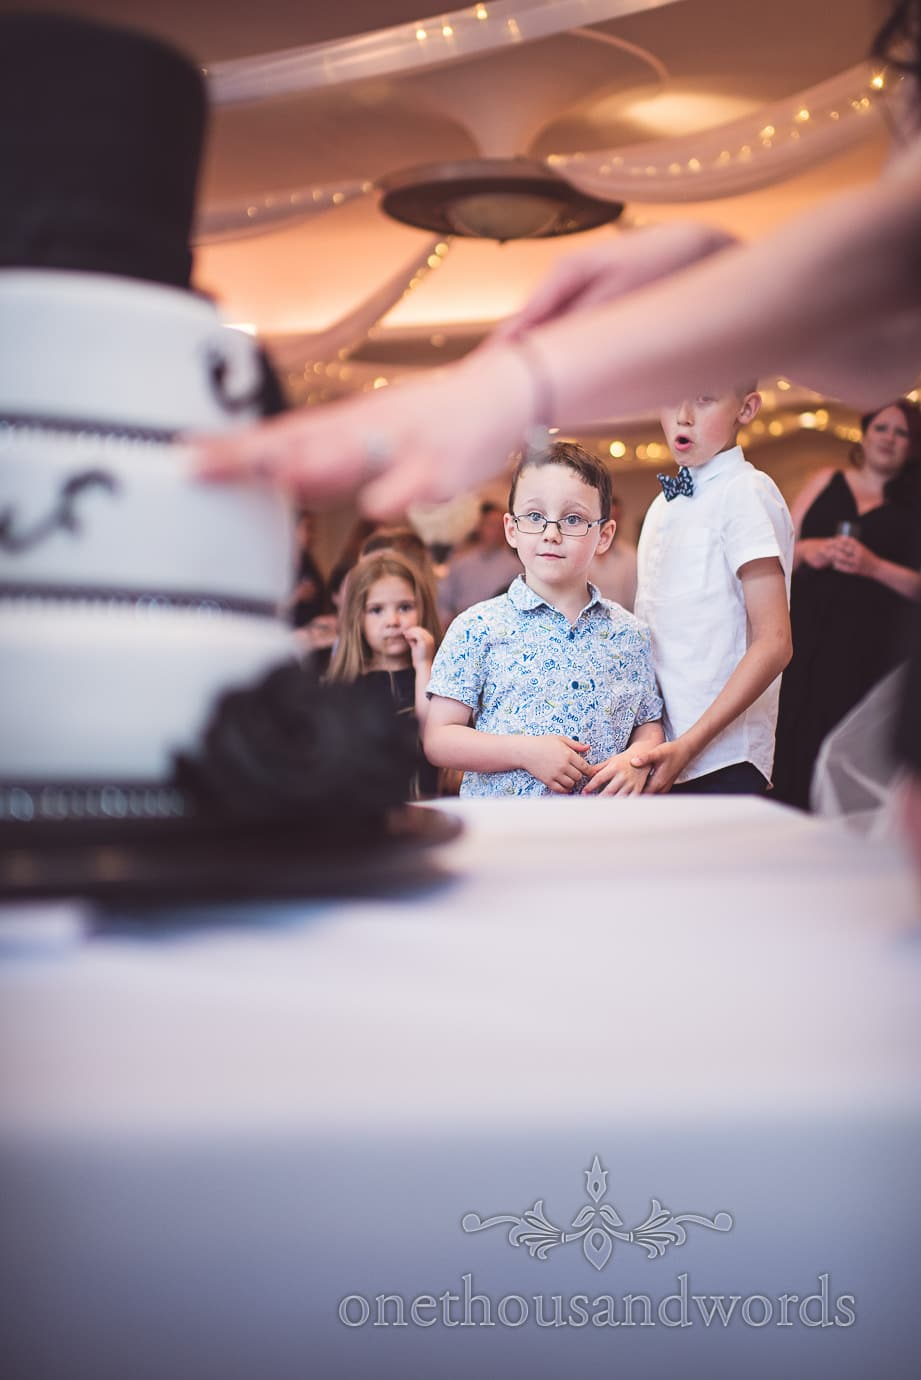 child wedding guests watch cutting of the cake with black and white wedding cake